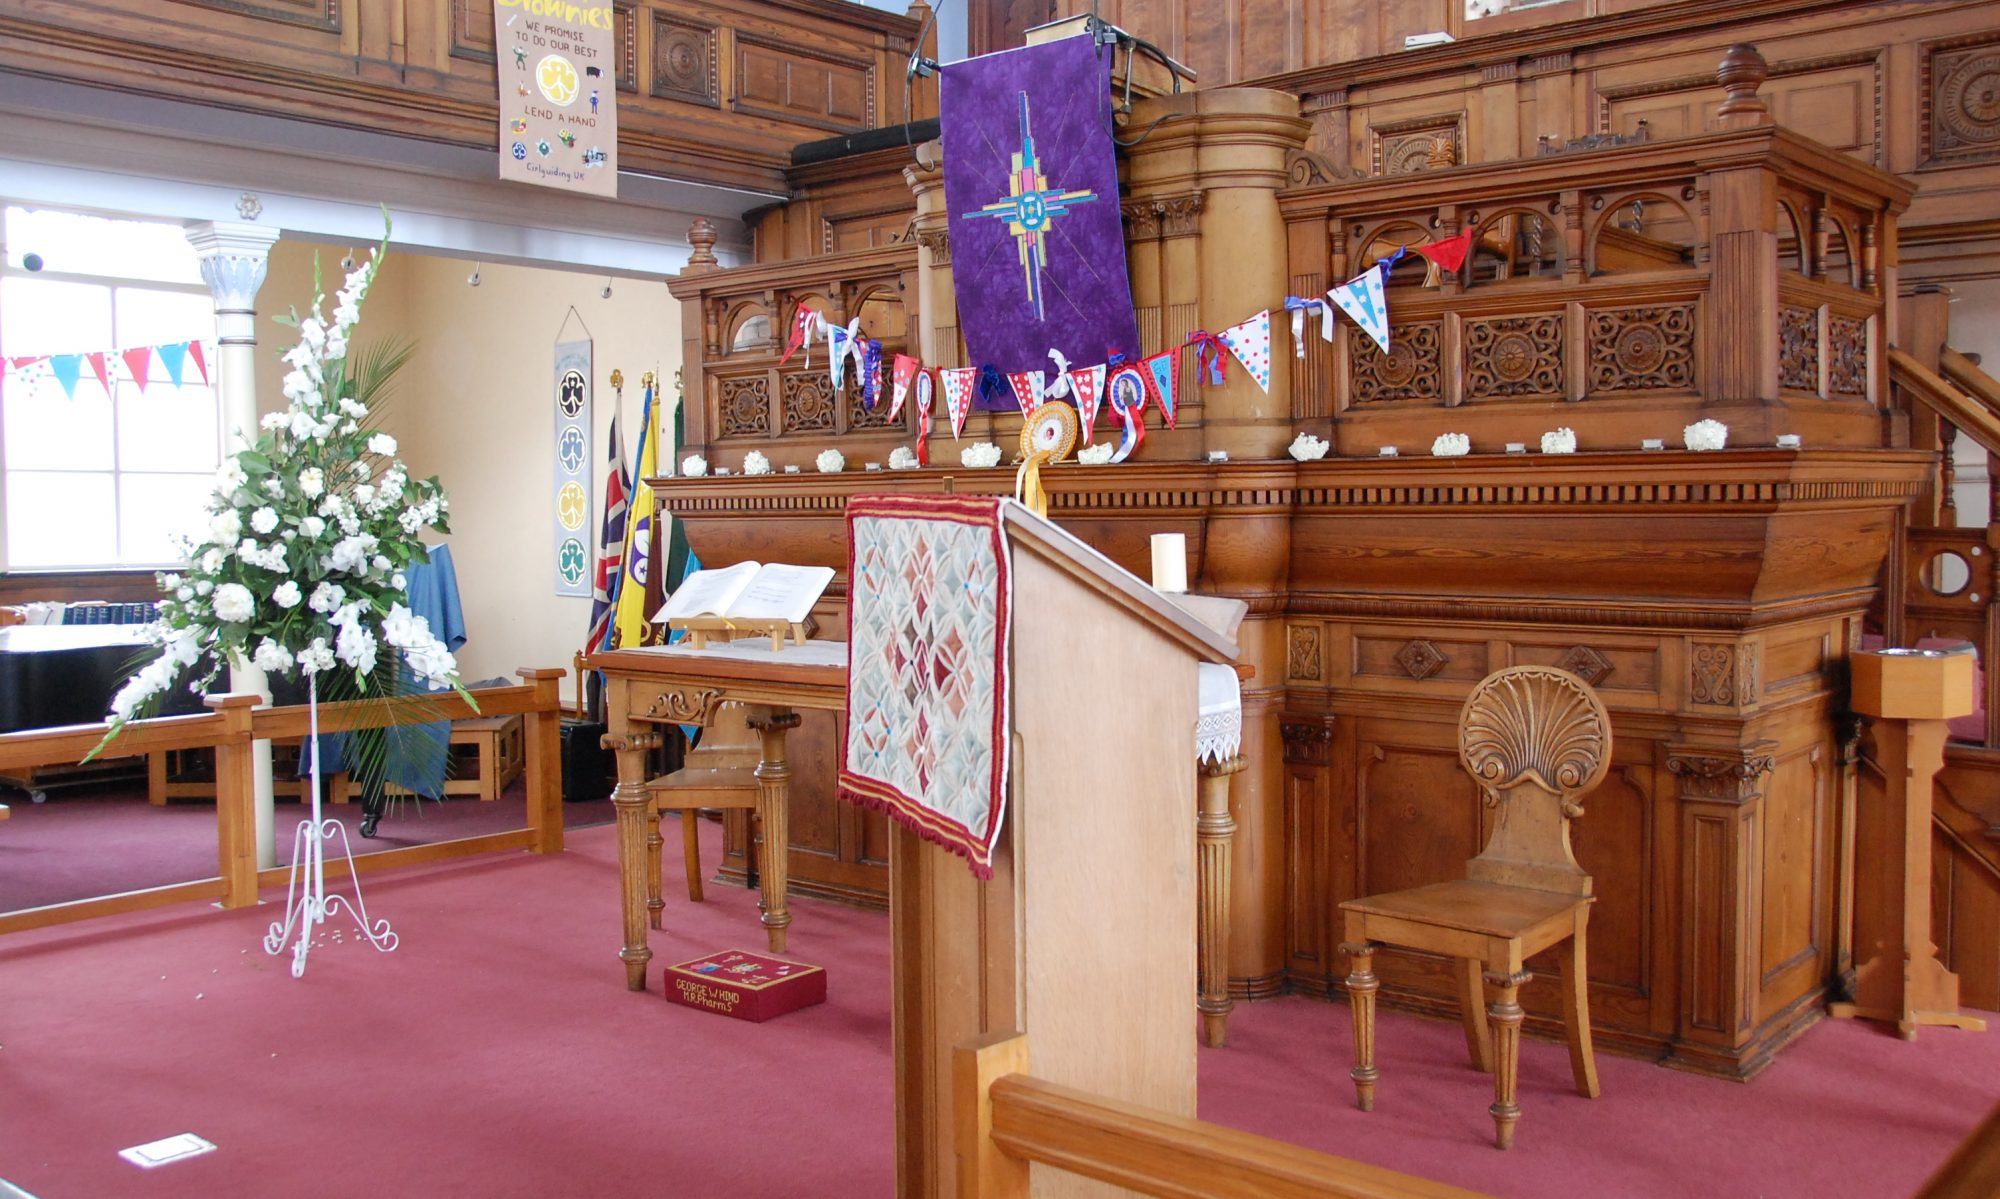 Toll Gavel United Church